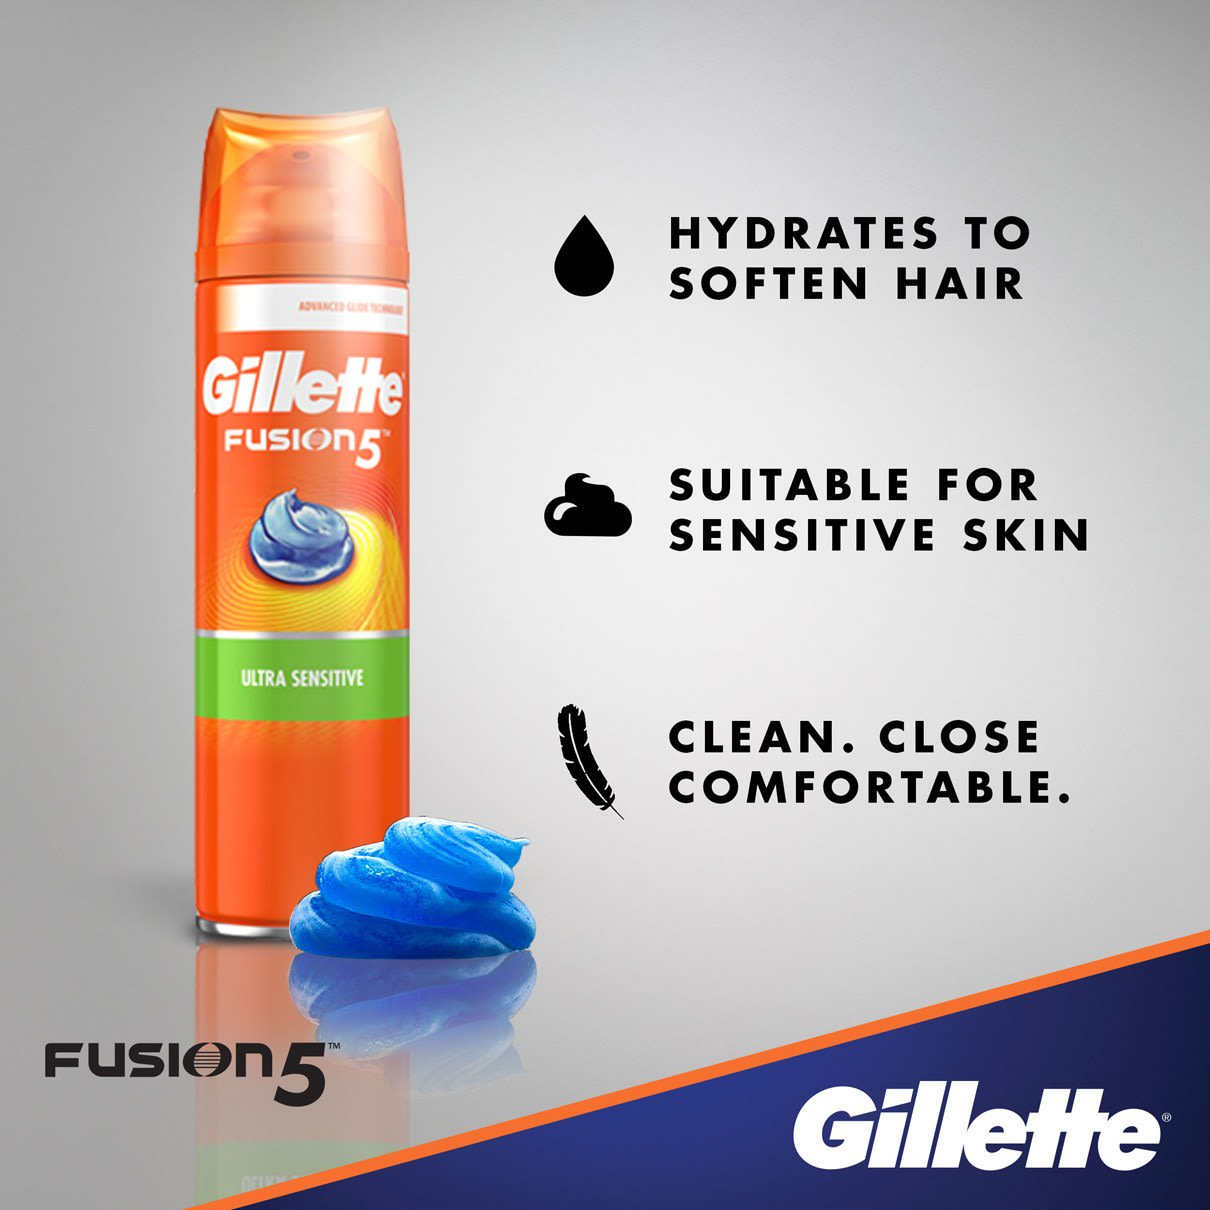 Hydrates to Soften Hair I Gillette Fusion5 Ultra Sensitive Shave Gel